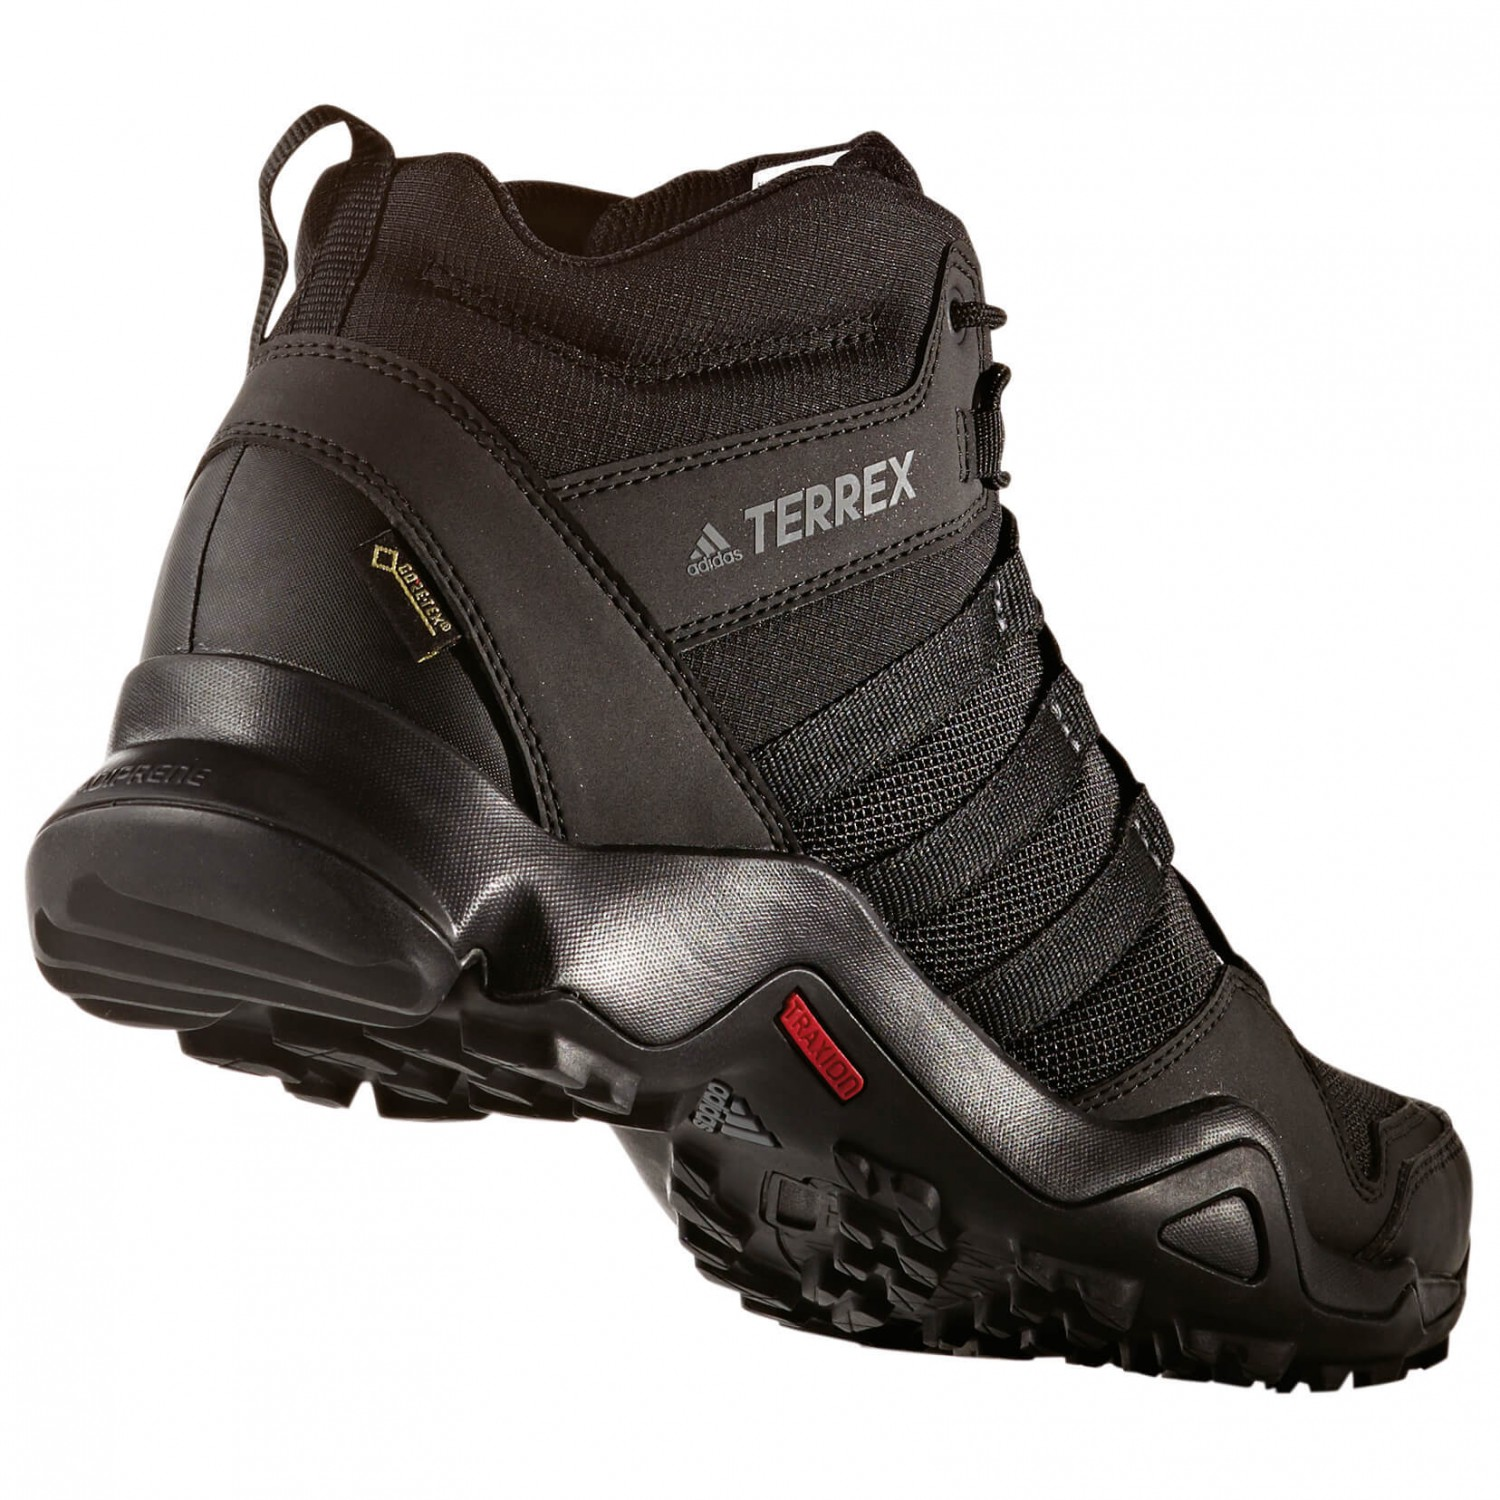 hot sale online 4d48e ac4f3 Adidas Terrex AX2R Mid GTX - Walking Boots Mens  Buy online   Alpinetrek.co.uk